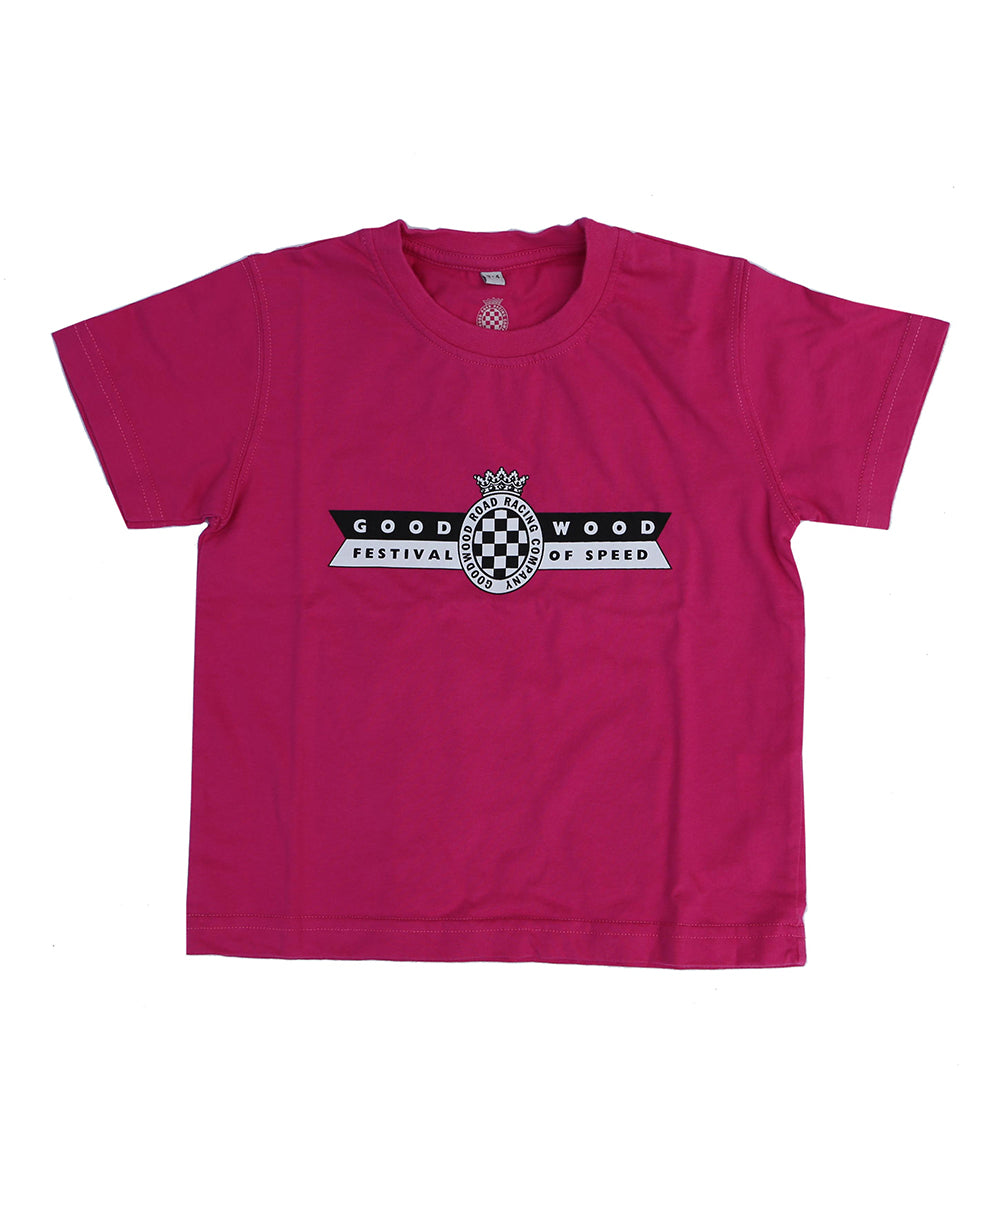 Festival of Speed Logo Pink Children's T-Shirt